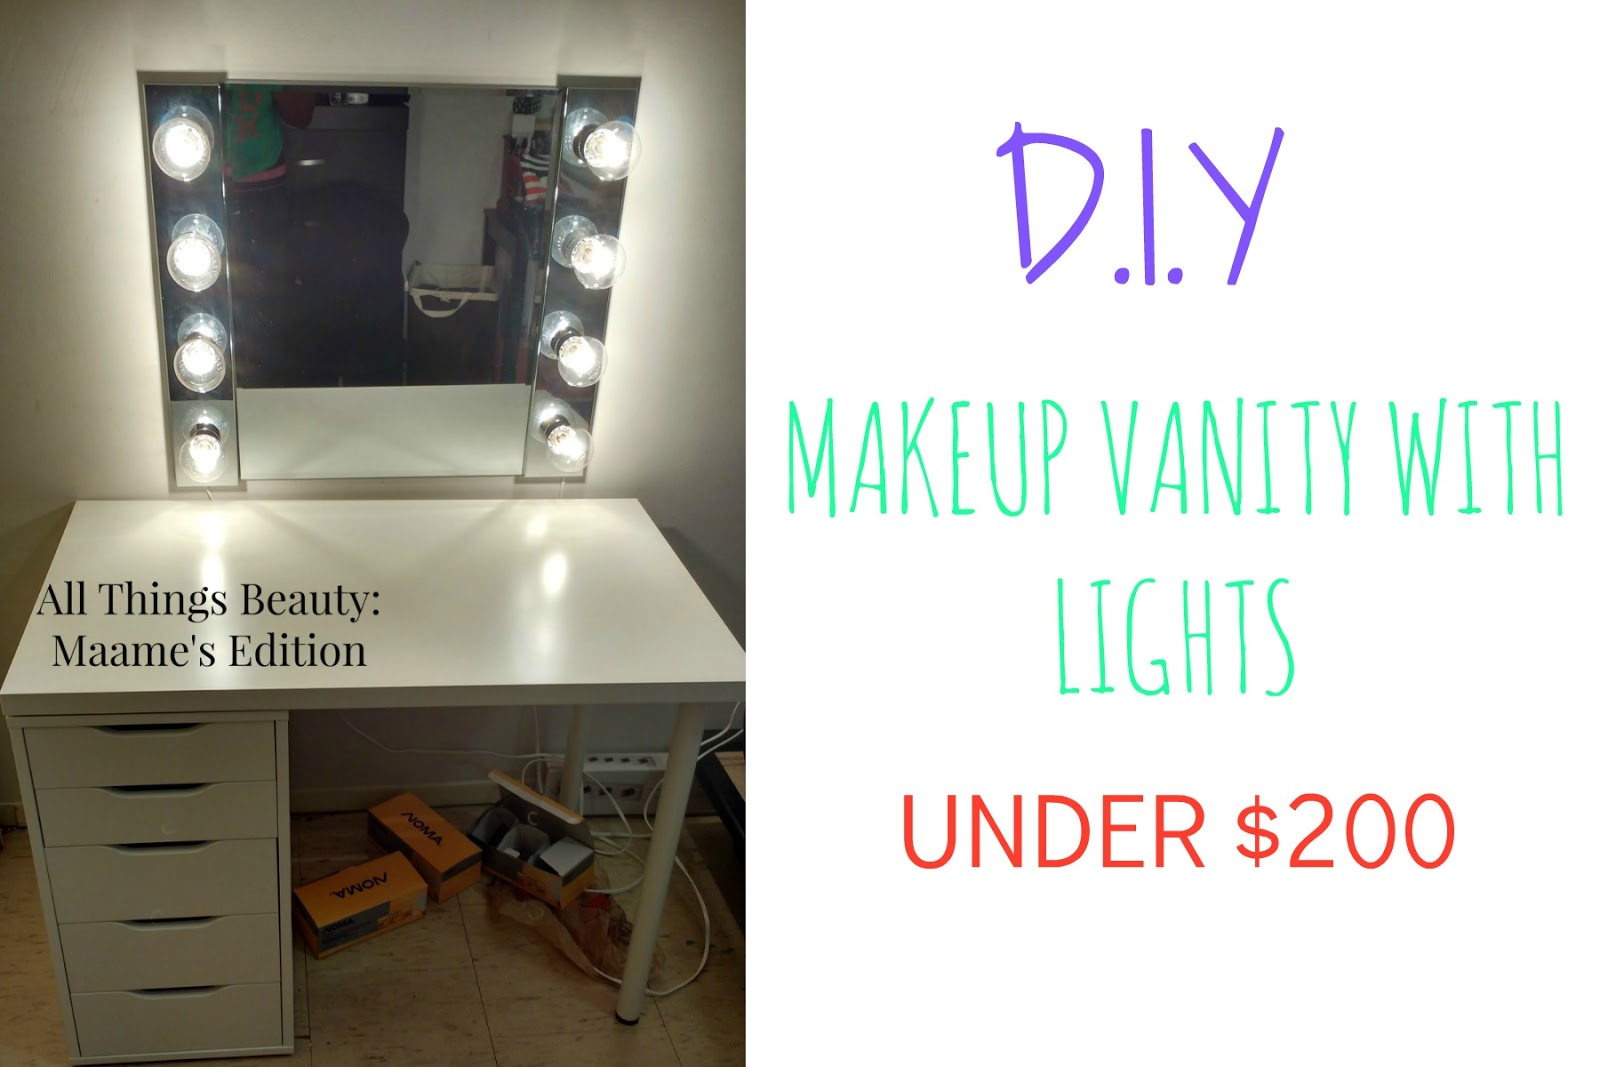 Makeup storage diy makeup vanity table with lights for under 200 makeup storage diy makeup vanity table with lights for under 200 solutioingenieria Image collections